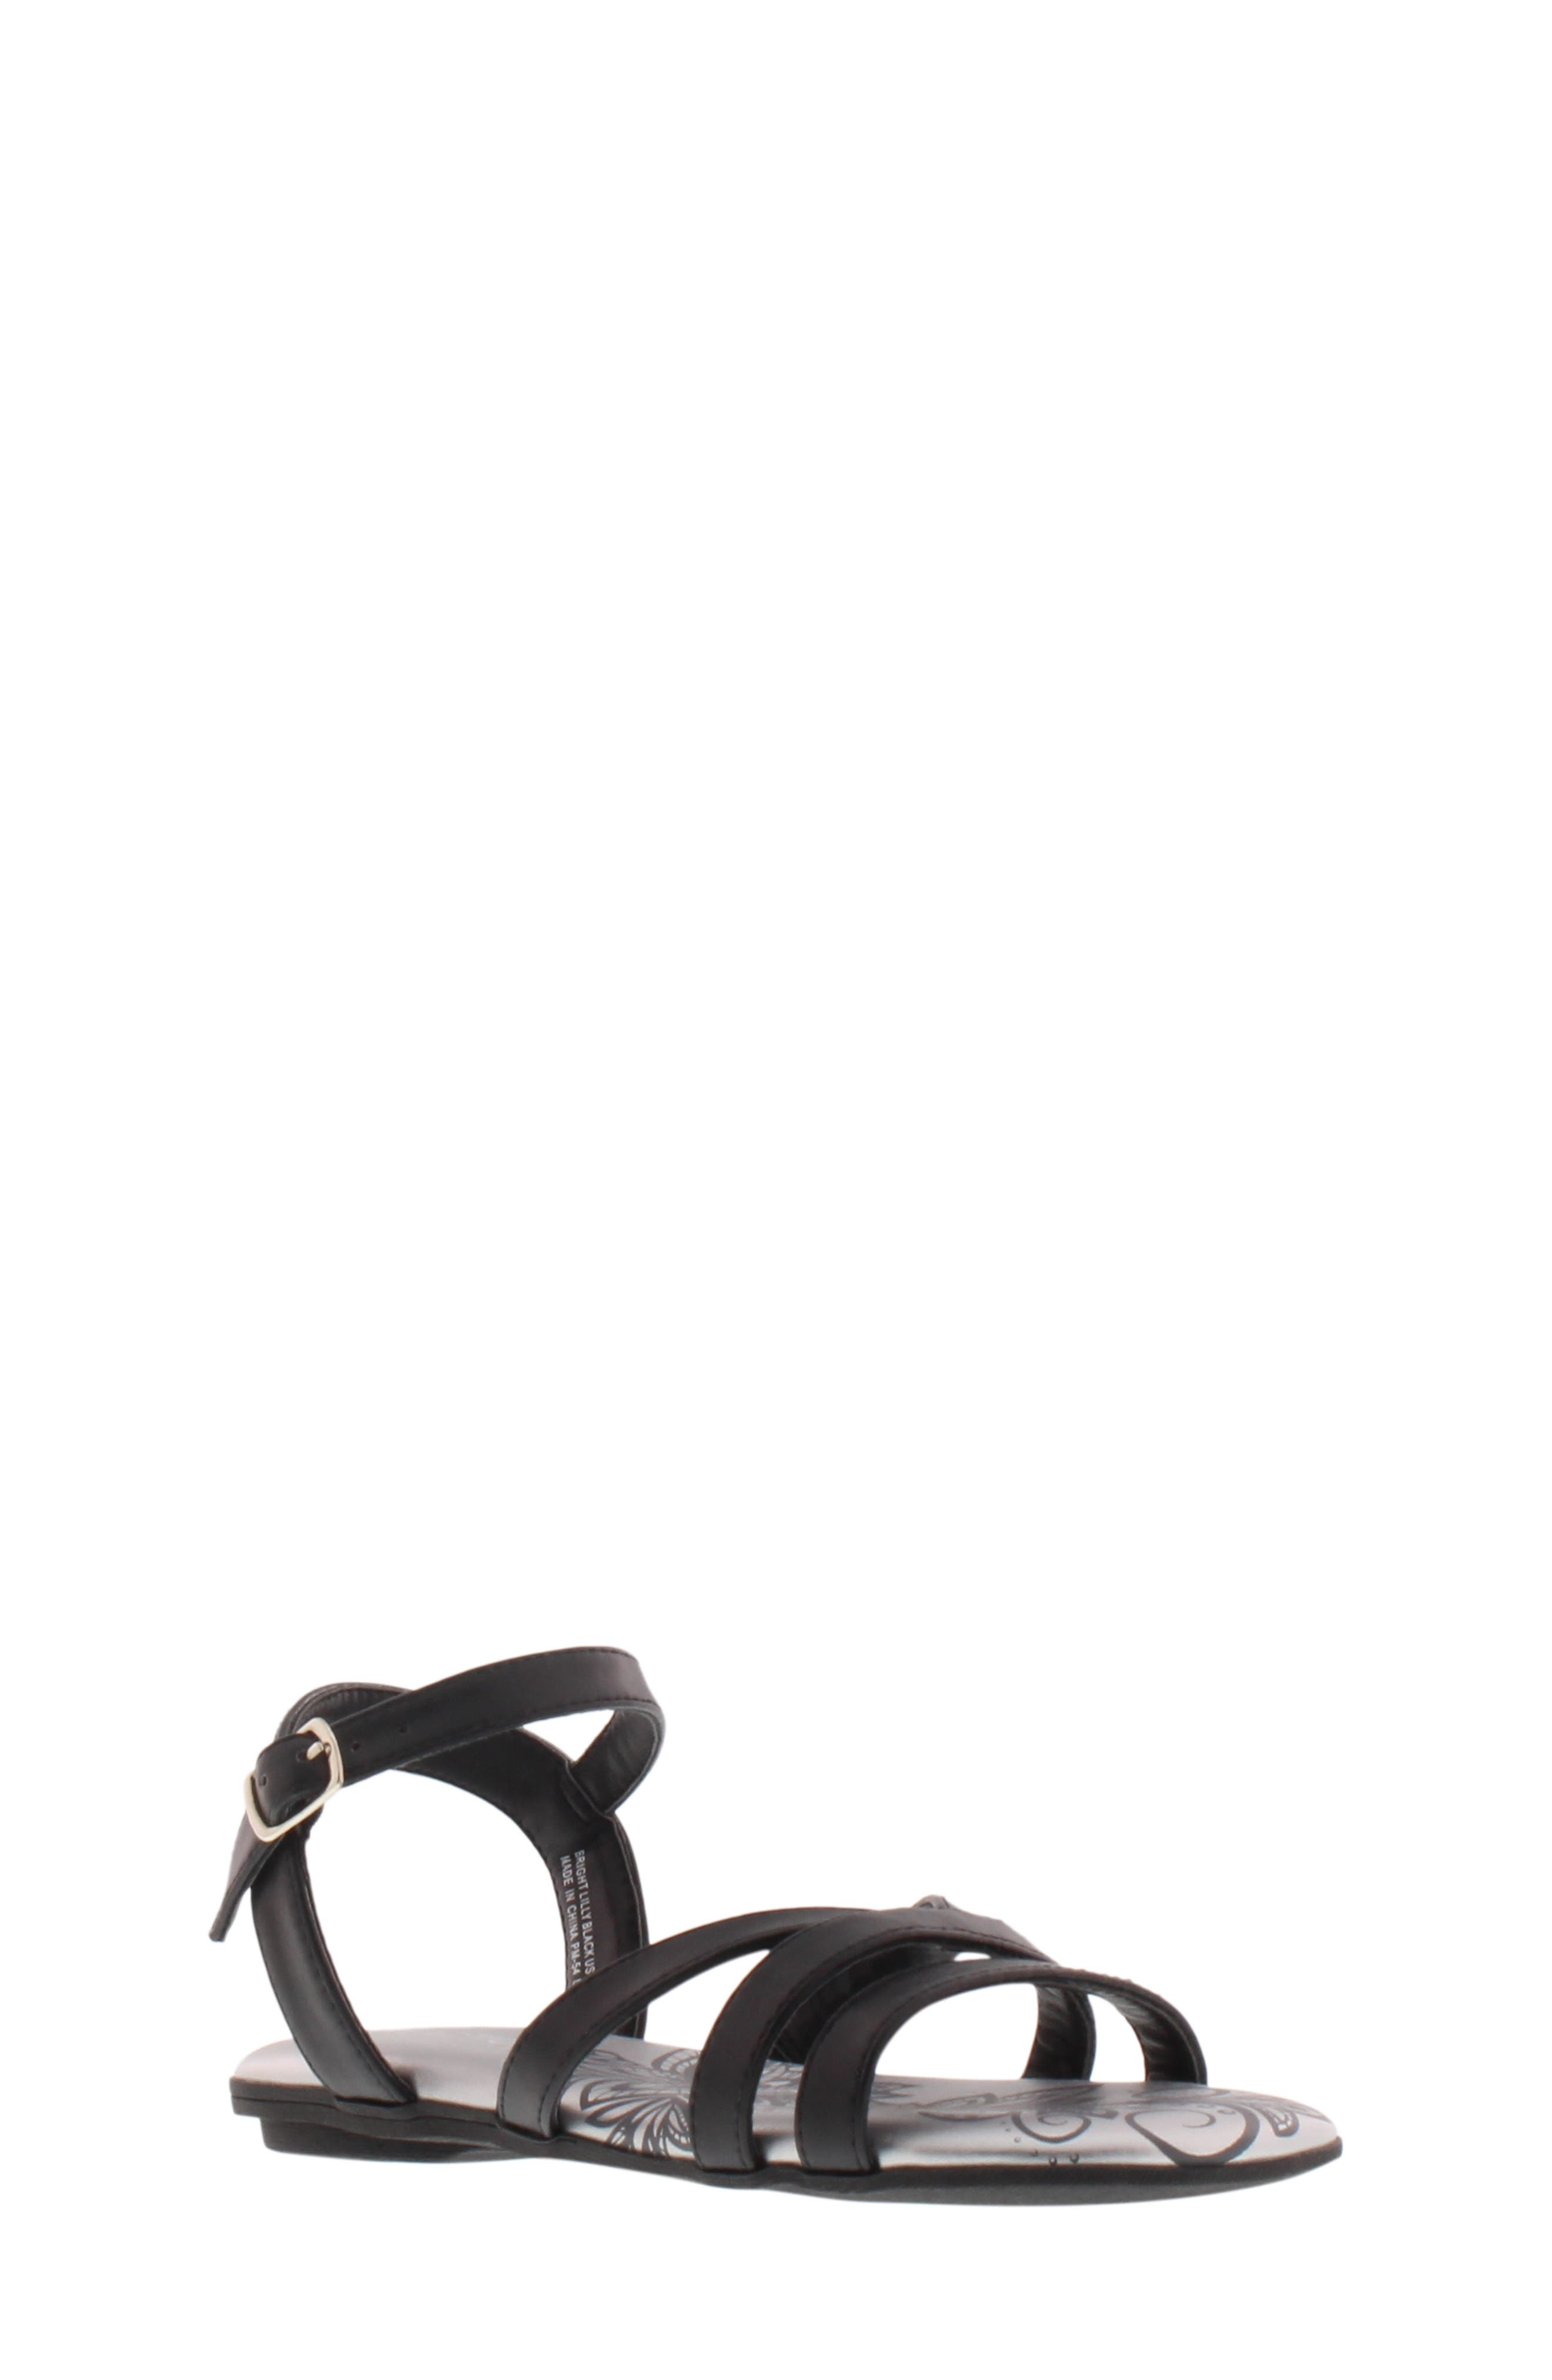 REACTION KENNETH COLE,                             Bright Lilly Strappy Sandal,                             Alternate thumbnail 9, color,                             BLACK